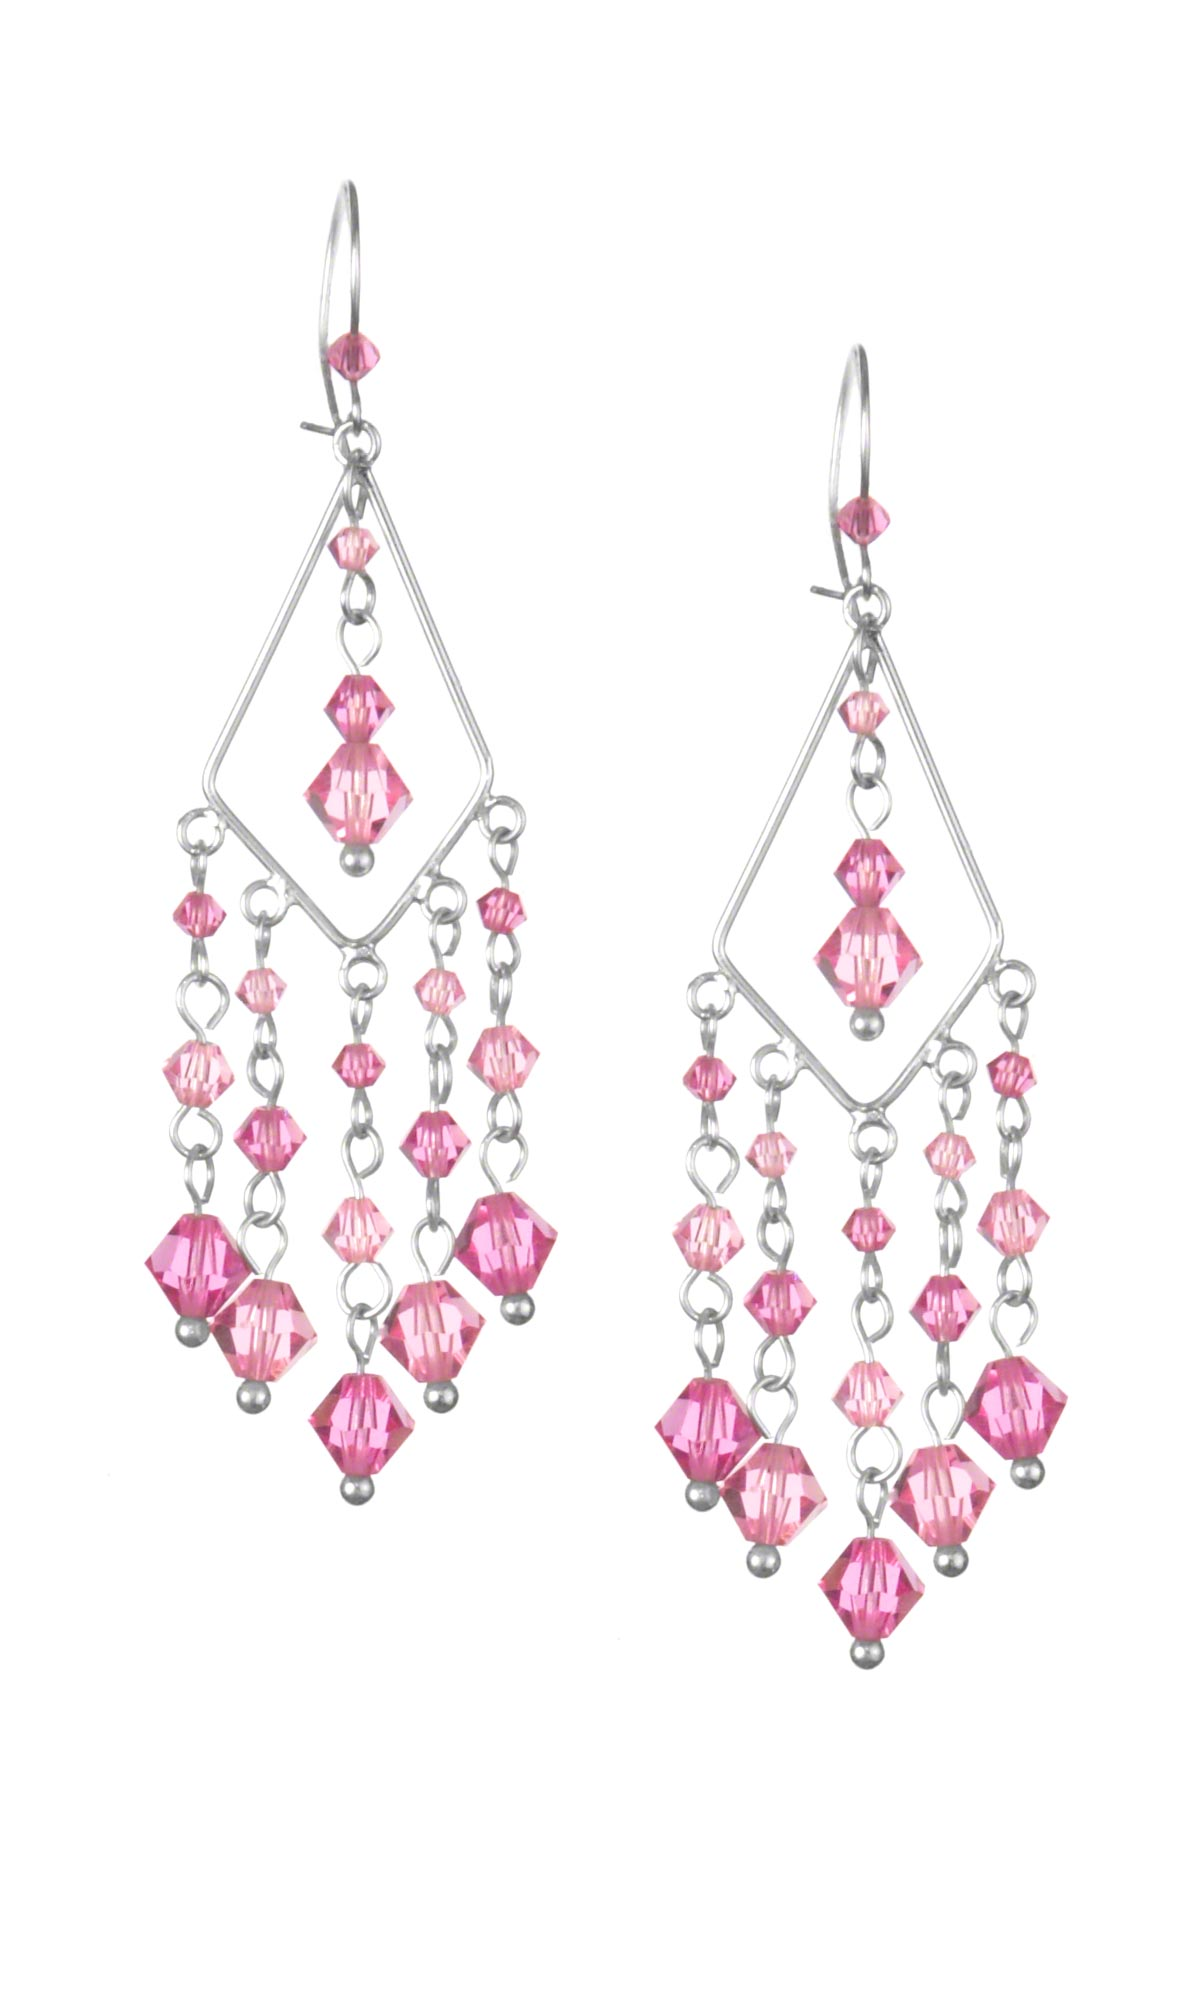 Earrings With Pink Swarovski Crystal Beads And Diamond Shaped Sterling Silver Drop Loops